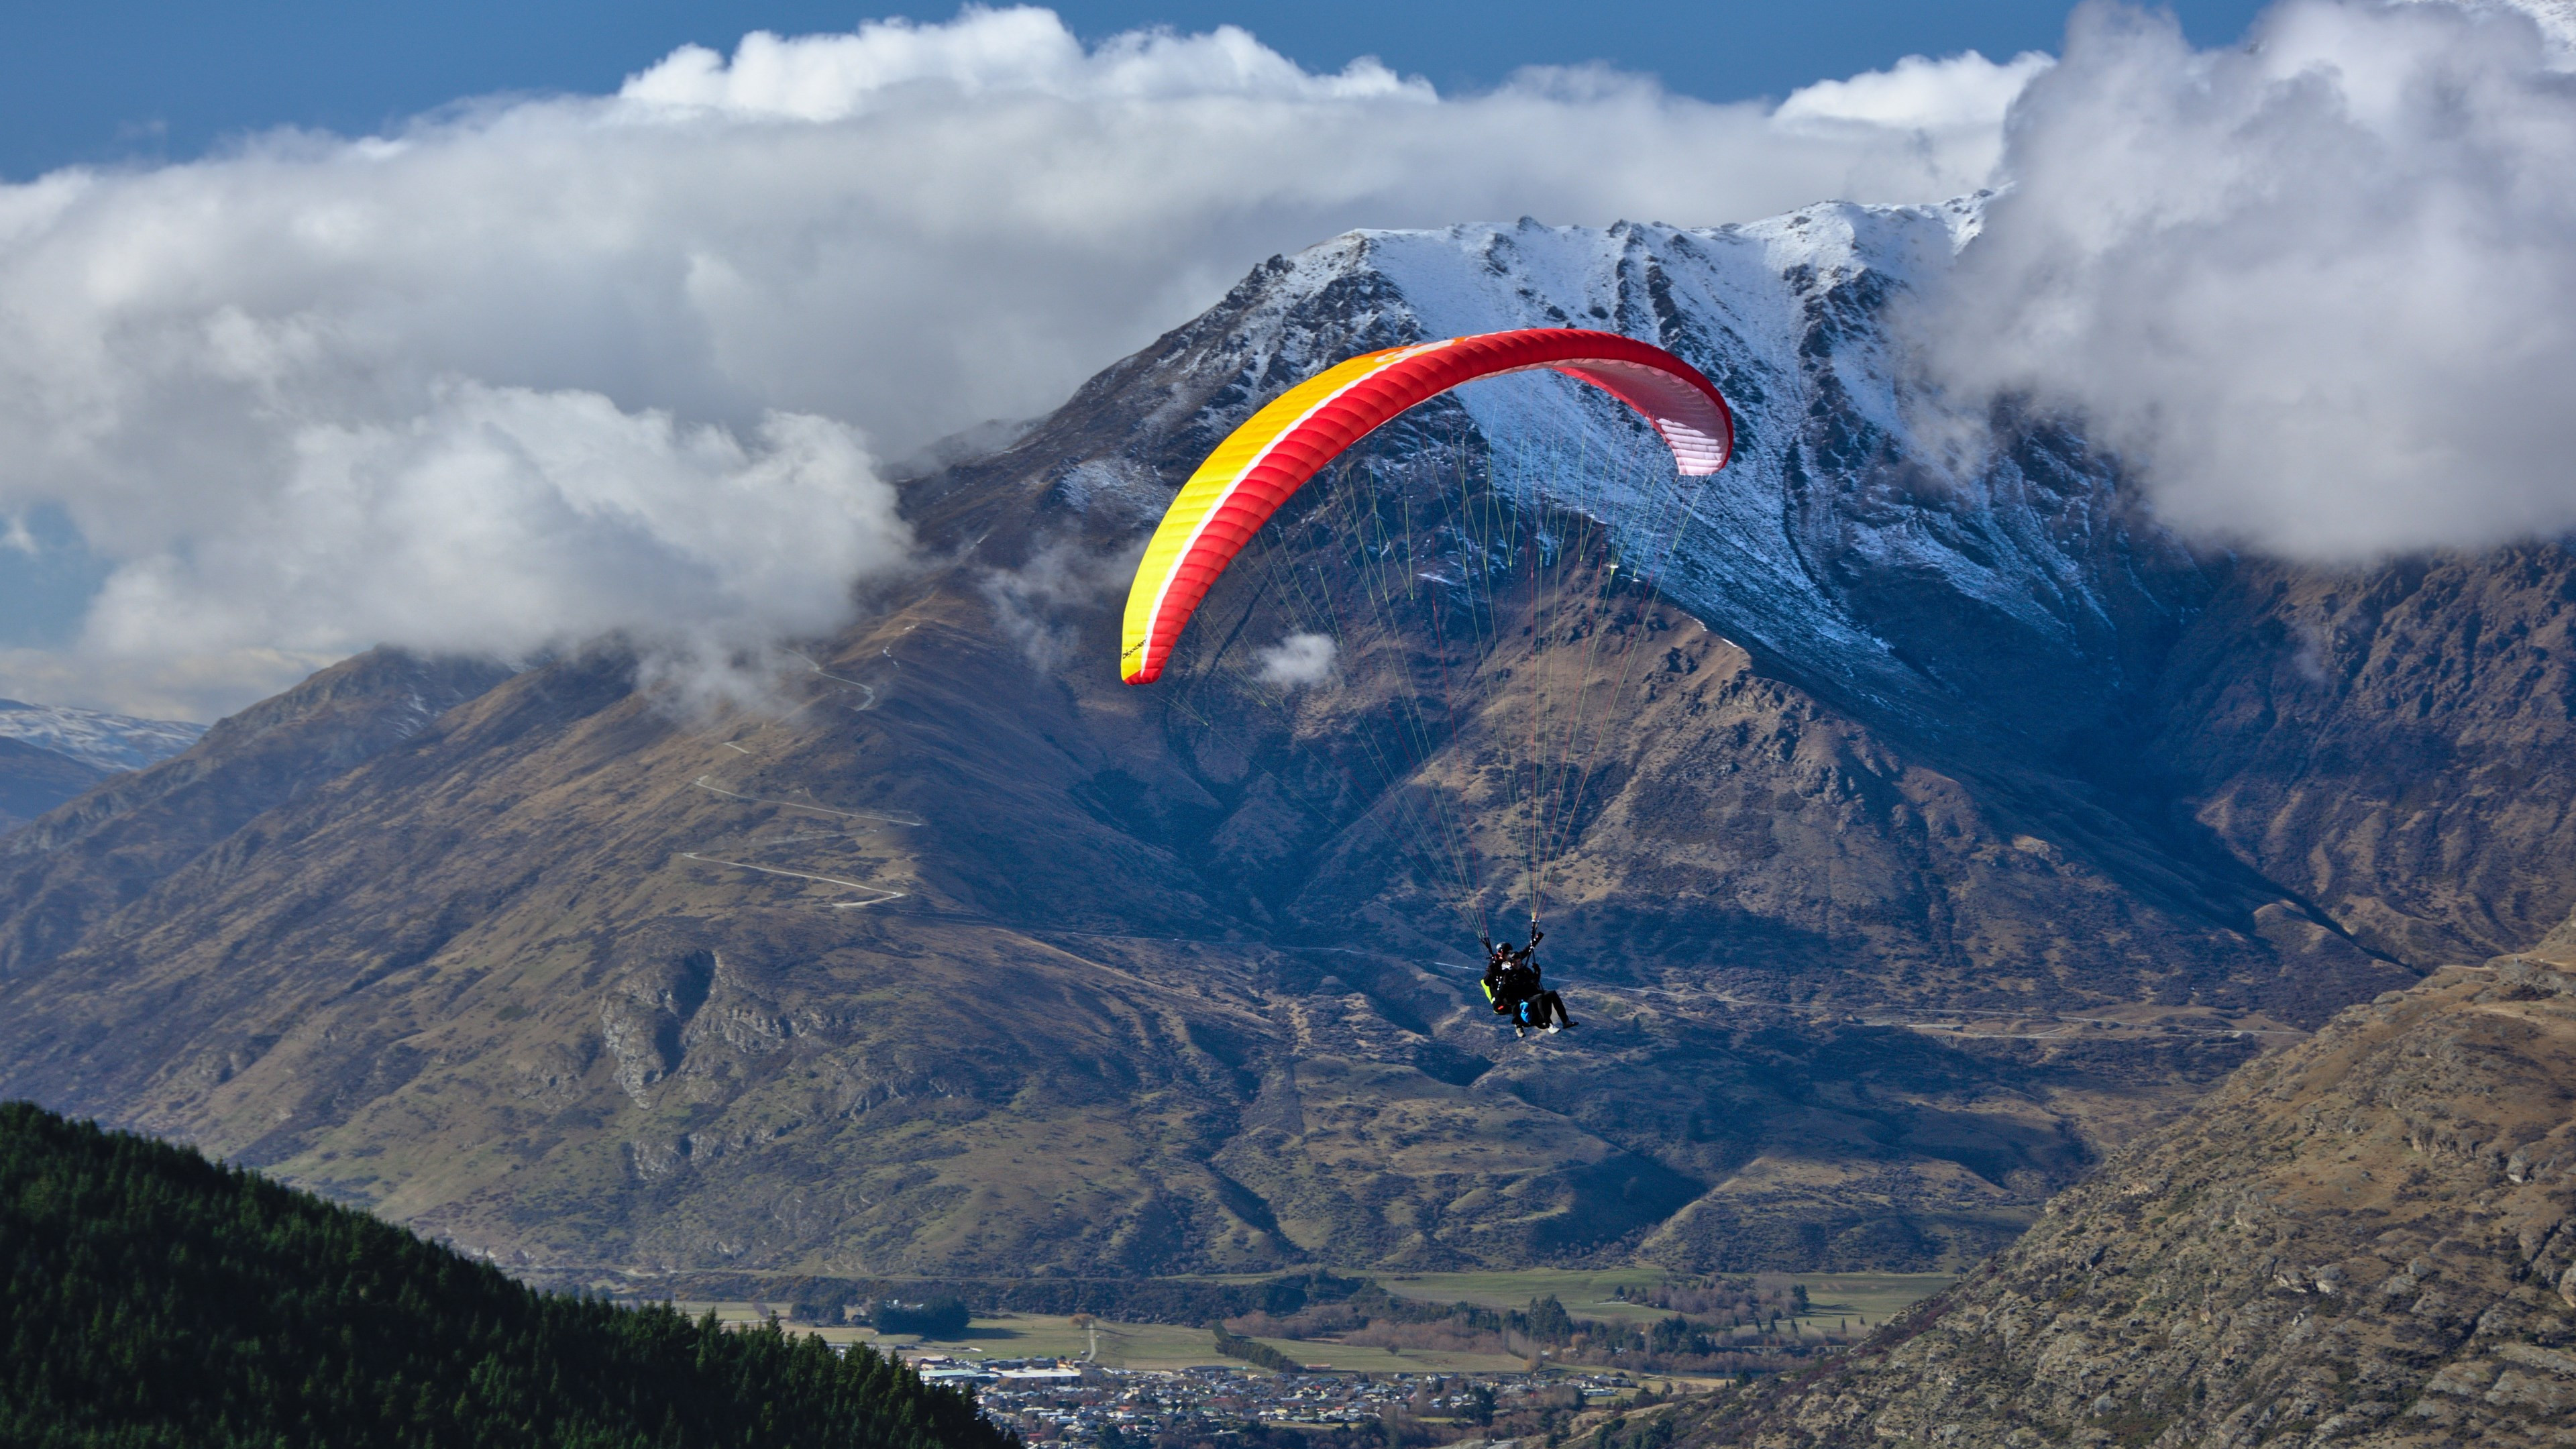 Paraglider up in the sky wallpaper 3840x2160